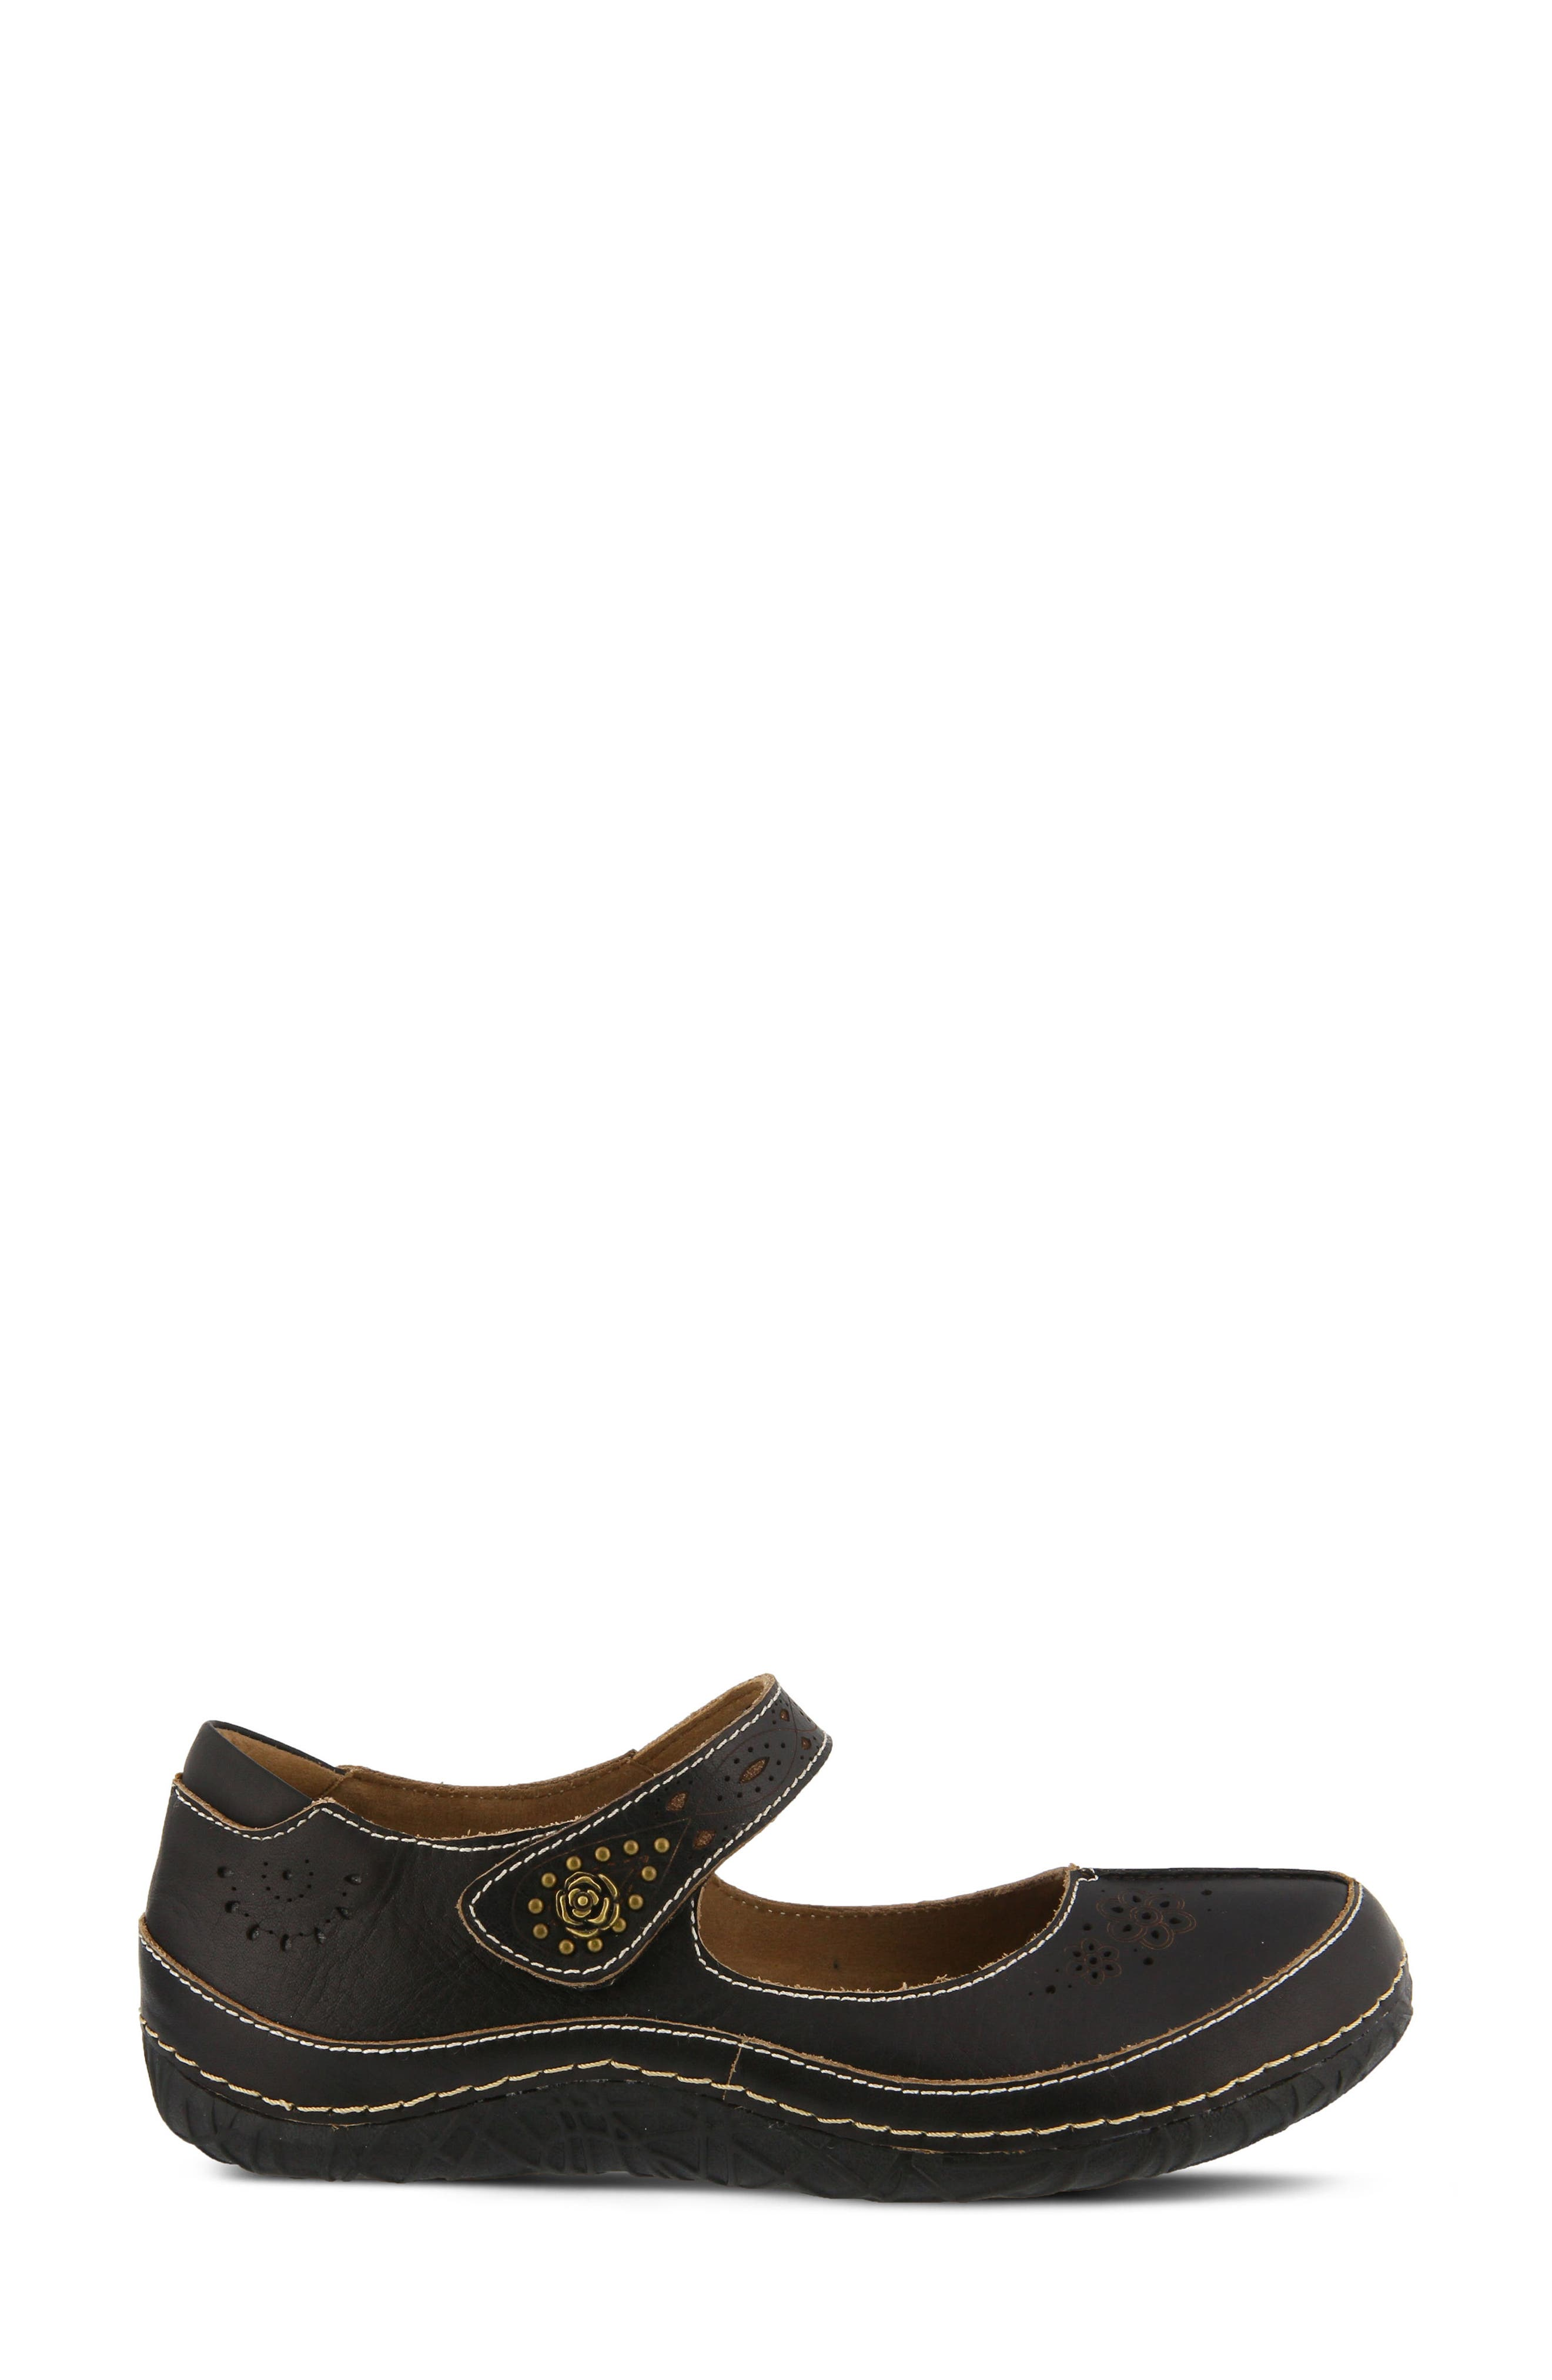 L'Artiste Lazarina Mary Jane Flat,                             Alternate thumbnail 3, color,                             Black Leather